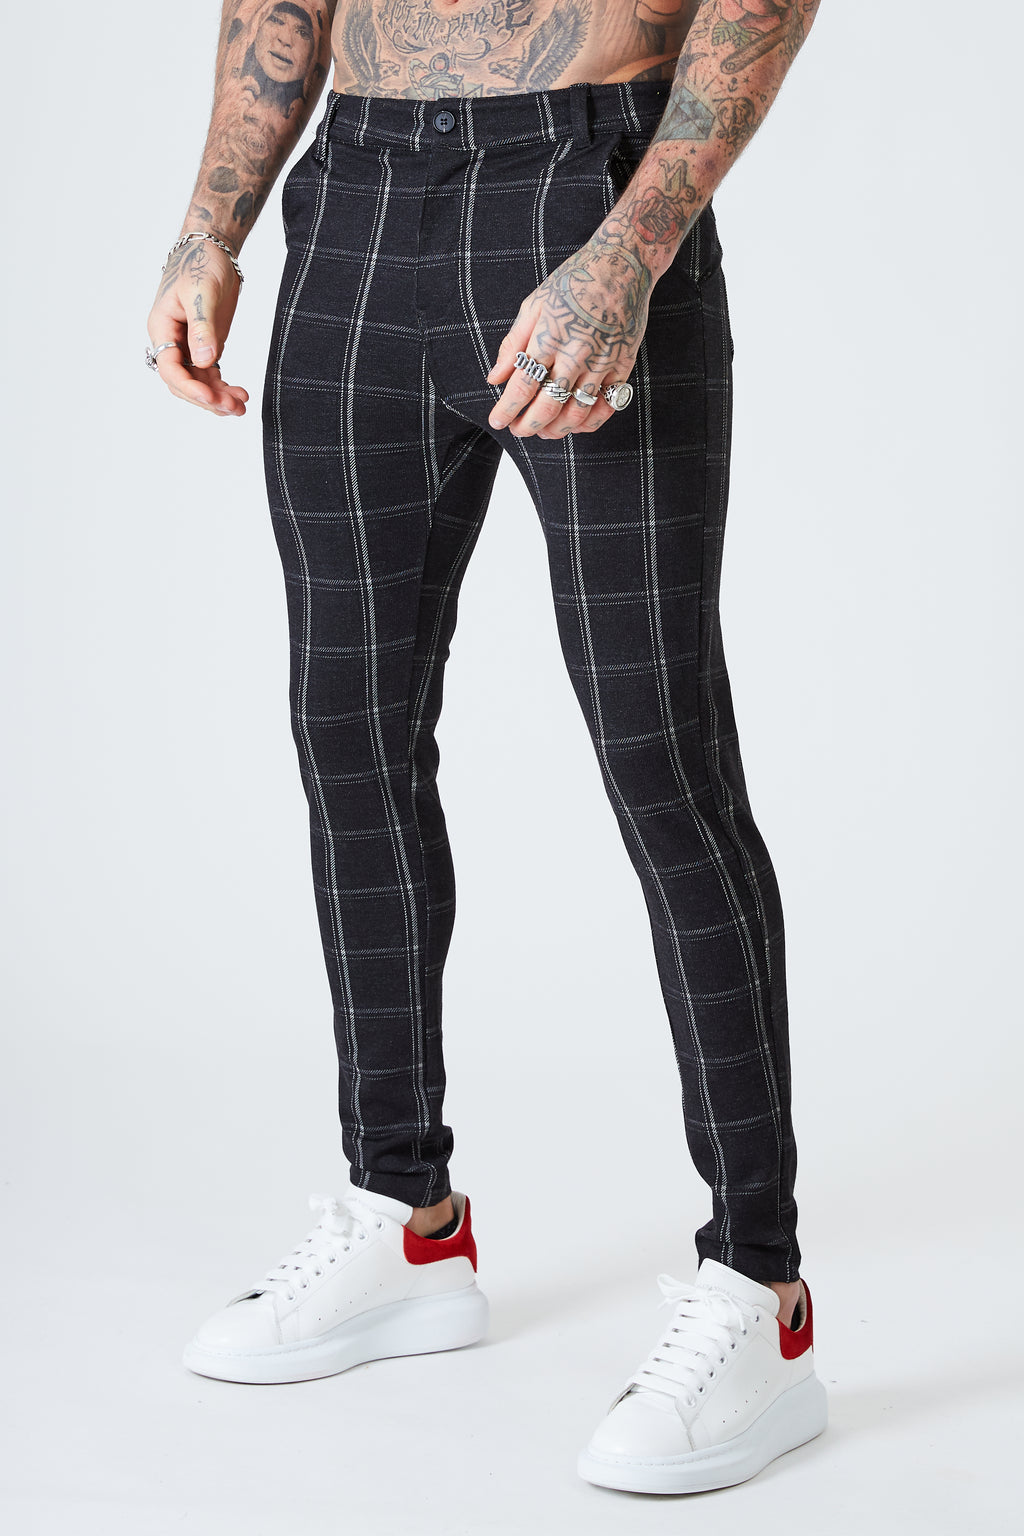 Luxe Grid Check Trousers - Black - SVPPLY. STUDIOS